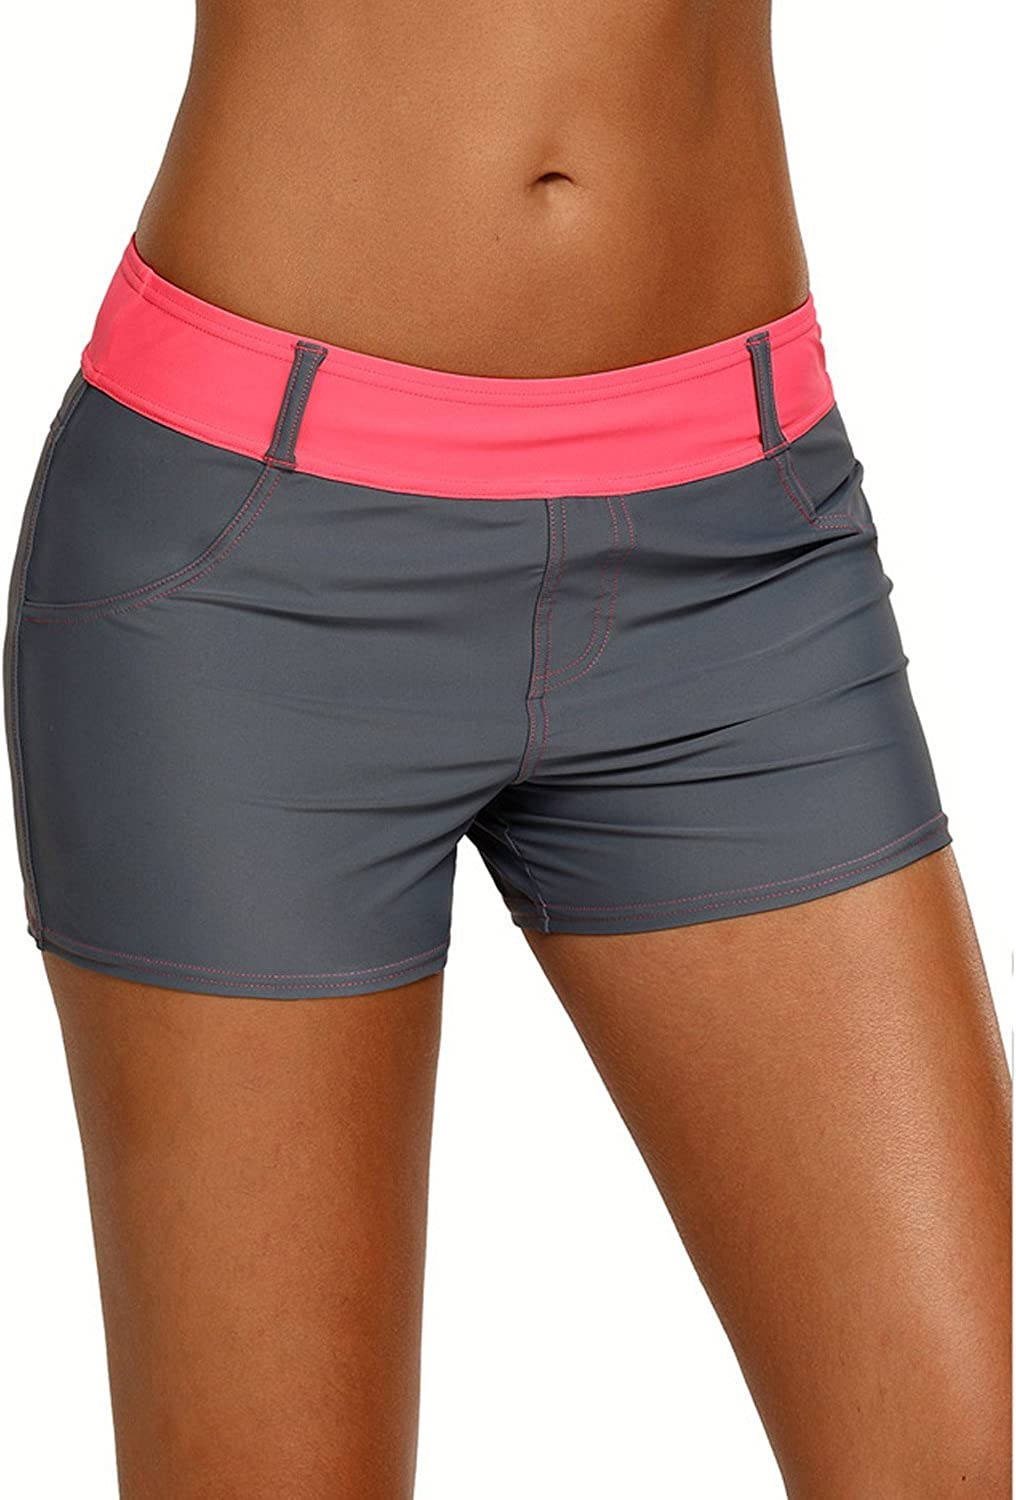 Pnfly Womens Swimming Trunks Bathing Suit Imitation Cowboy Casual Swimming Trunks